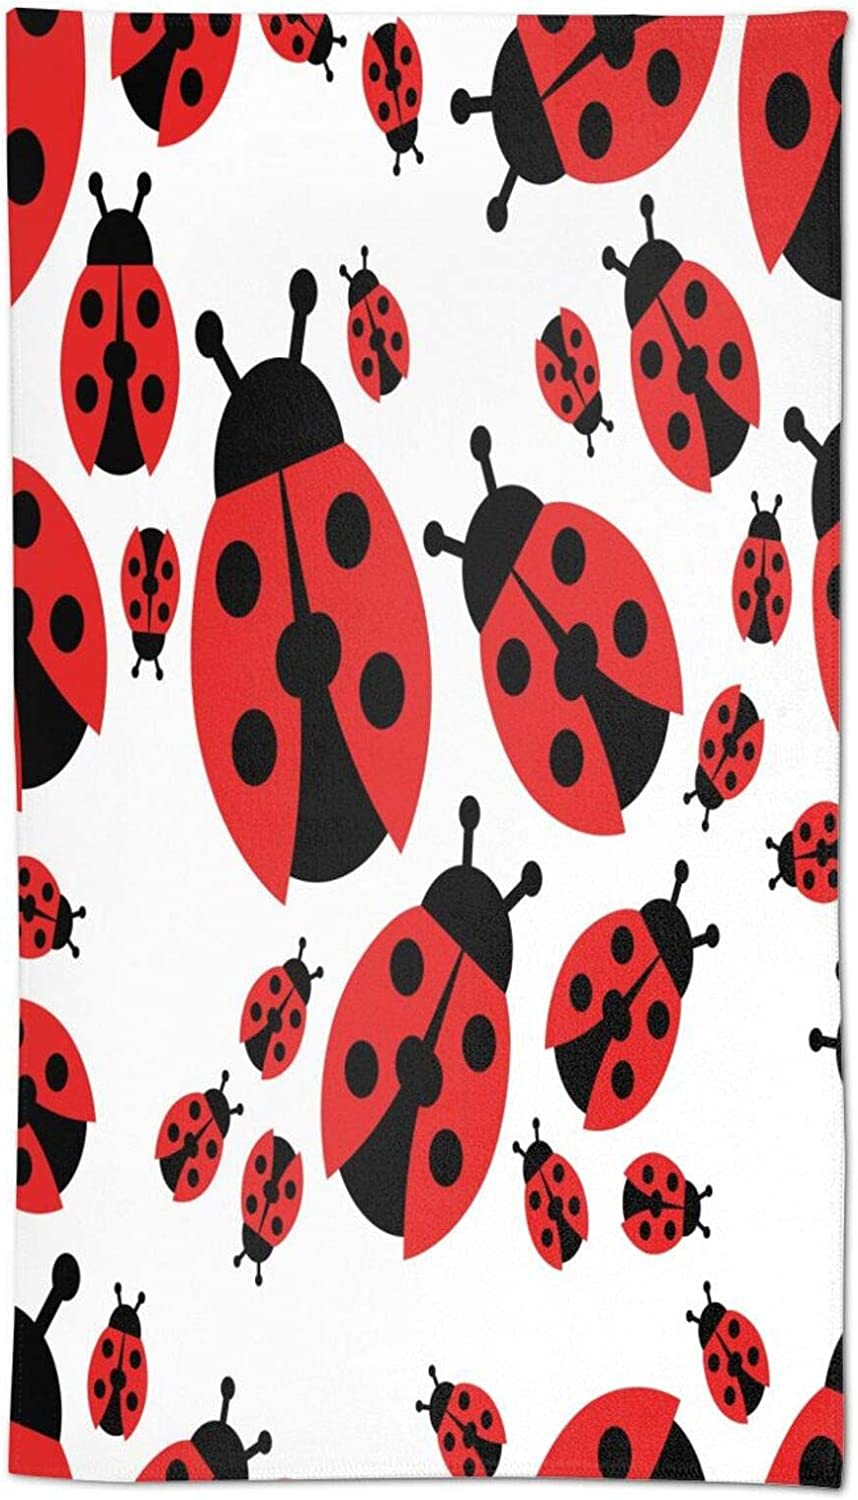 Mount Hour Cartoon Red Ladybug Hand Soft Face Ranking TOP19 Gues Towel Over item handling ☆ Towels